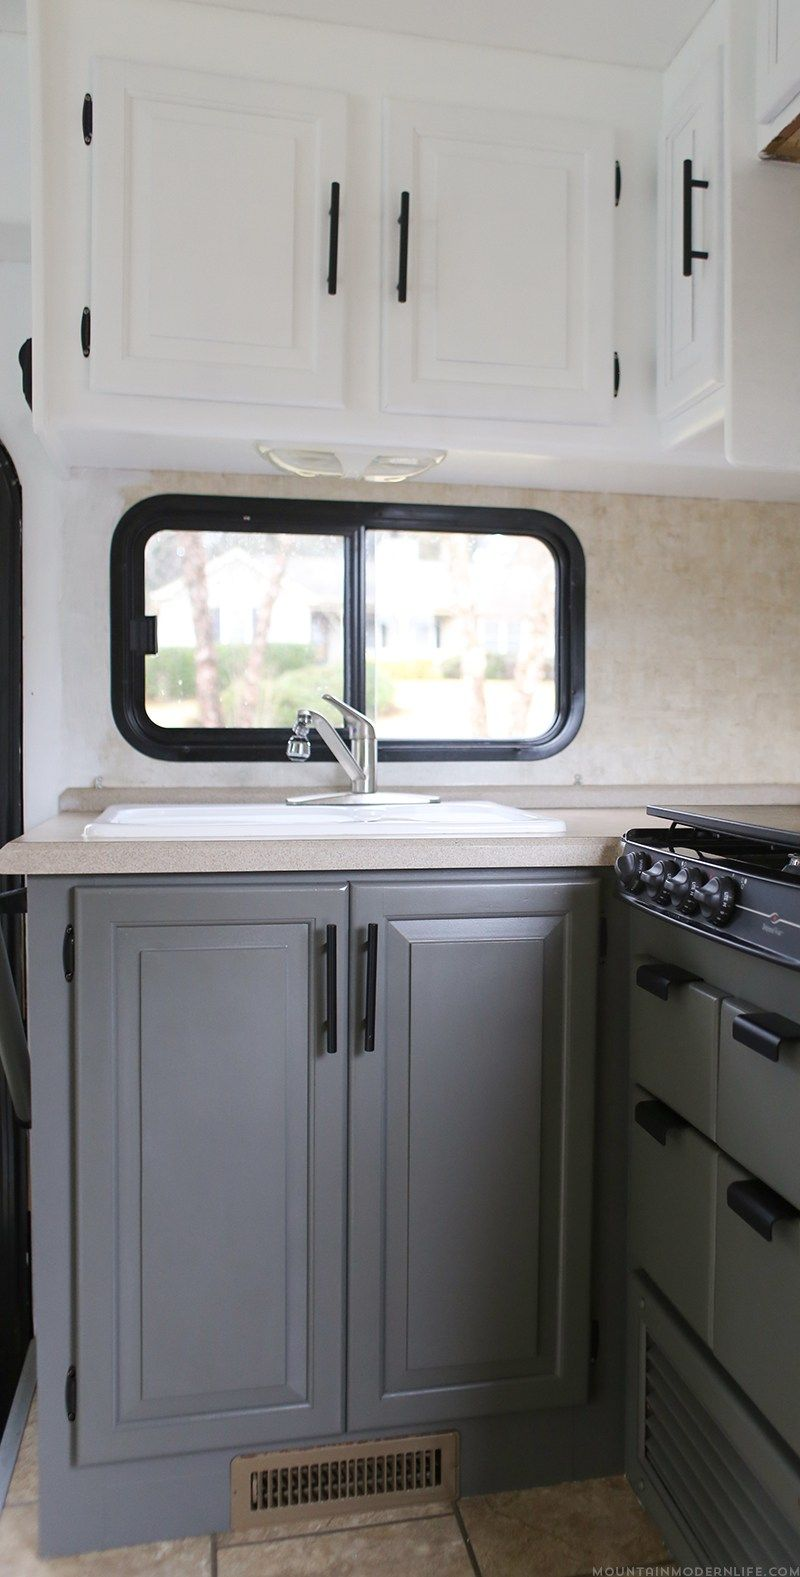 The Progress Of Our RV Kitchen Cabinets